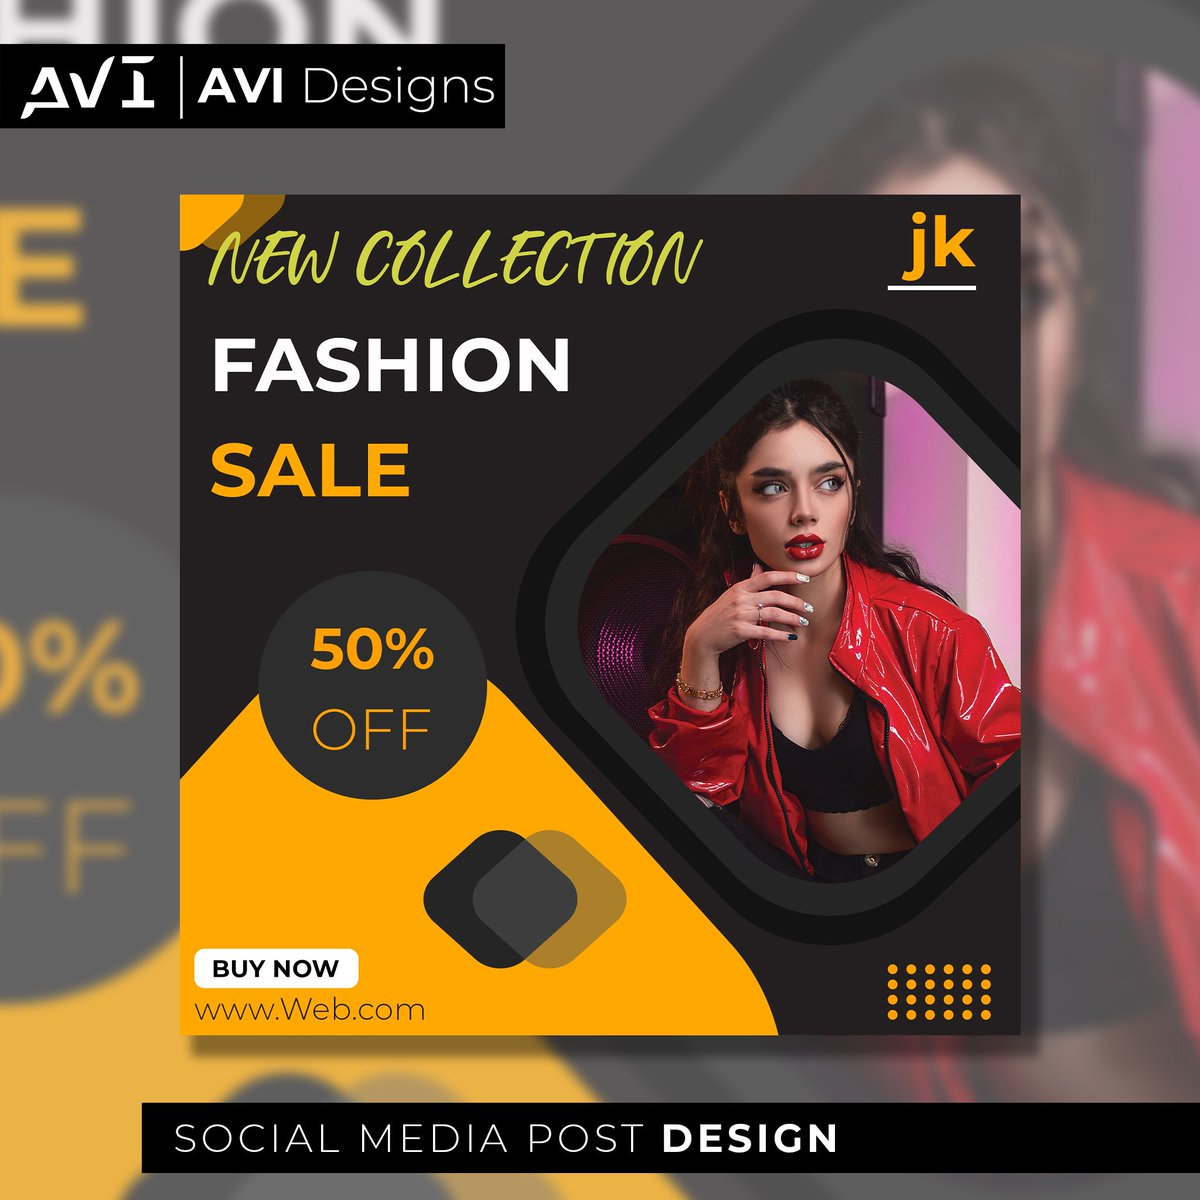 🔴 SOCIAL MEDIA POST DESIGN  This is an advertisement I made for a discount on new fashion clothes in my client's clothing store in another country. #fashion #style #photooftheday #beautiful #instagram #picoftheday #model #follow #beauty #fashionblogger ( MY CONCEPT DESIGN! ) https://t.co/BBq63TVajC